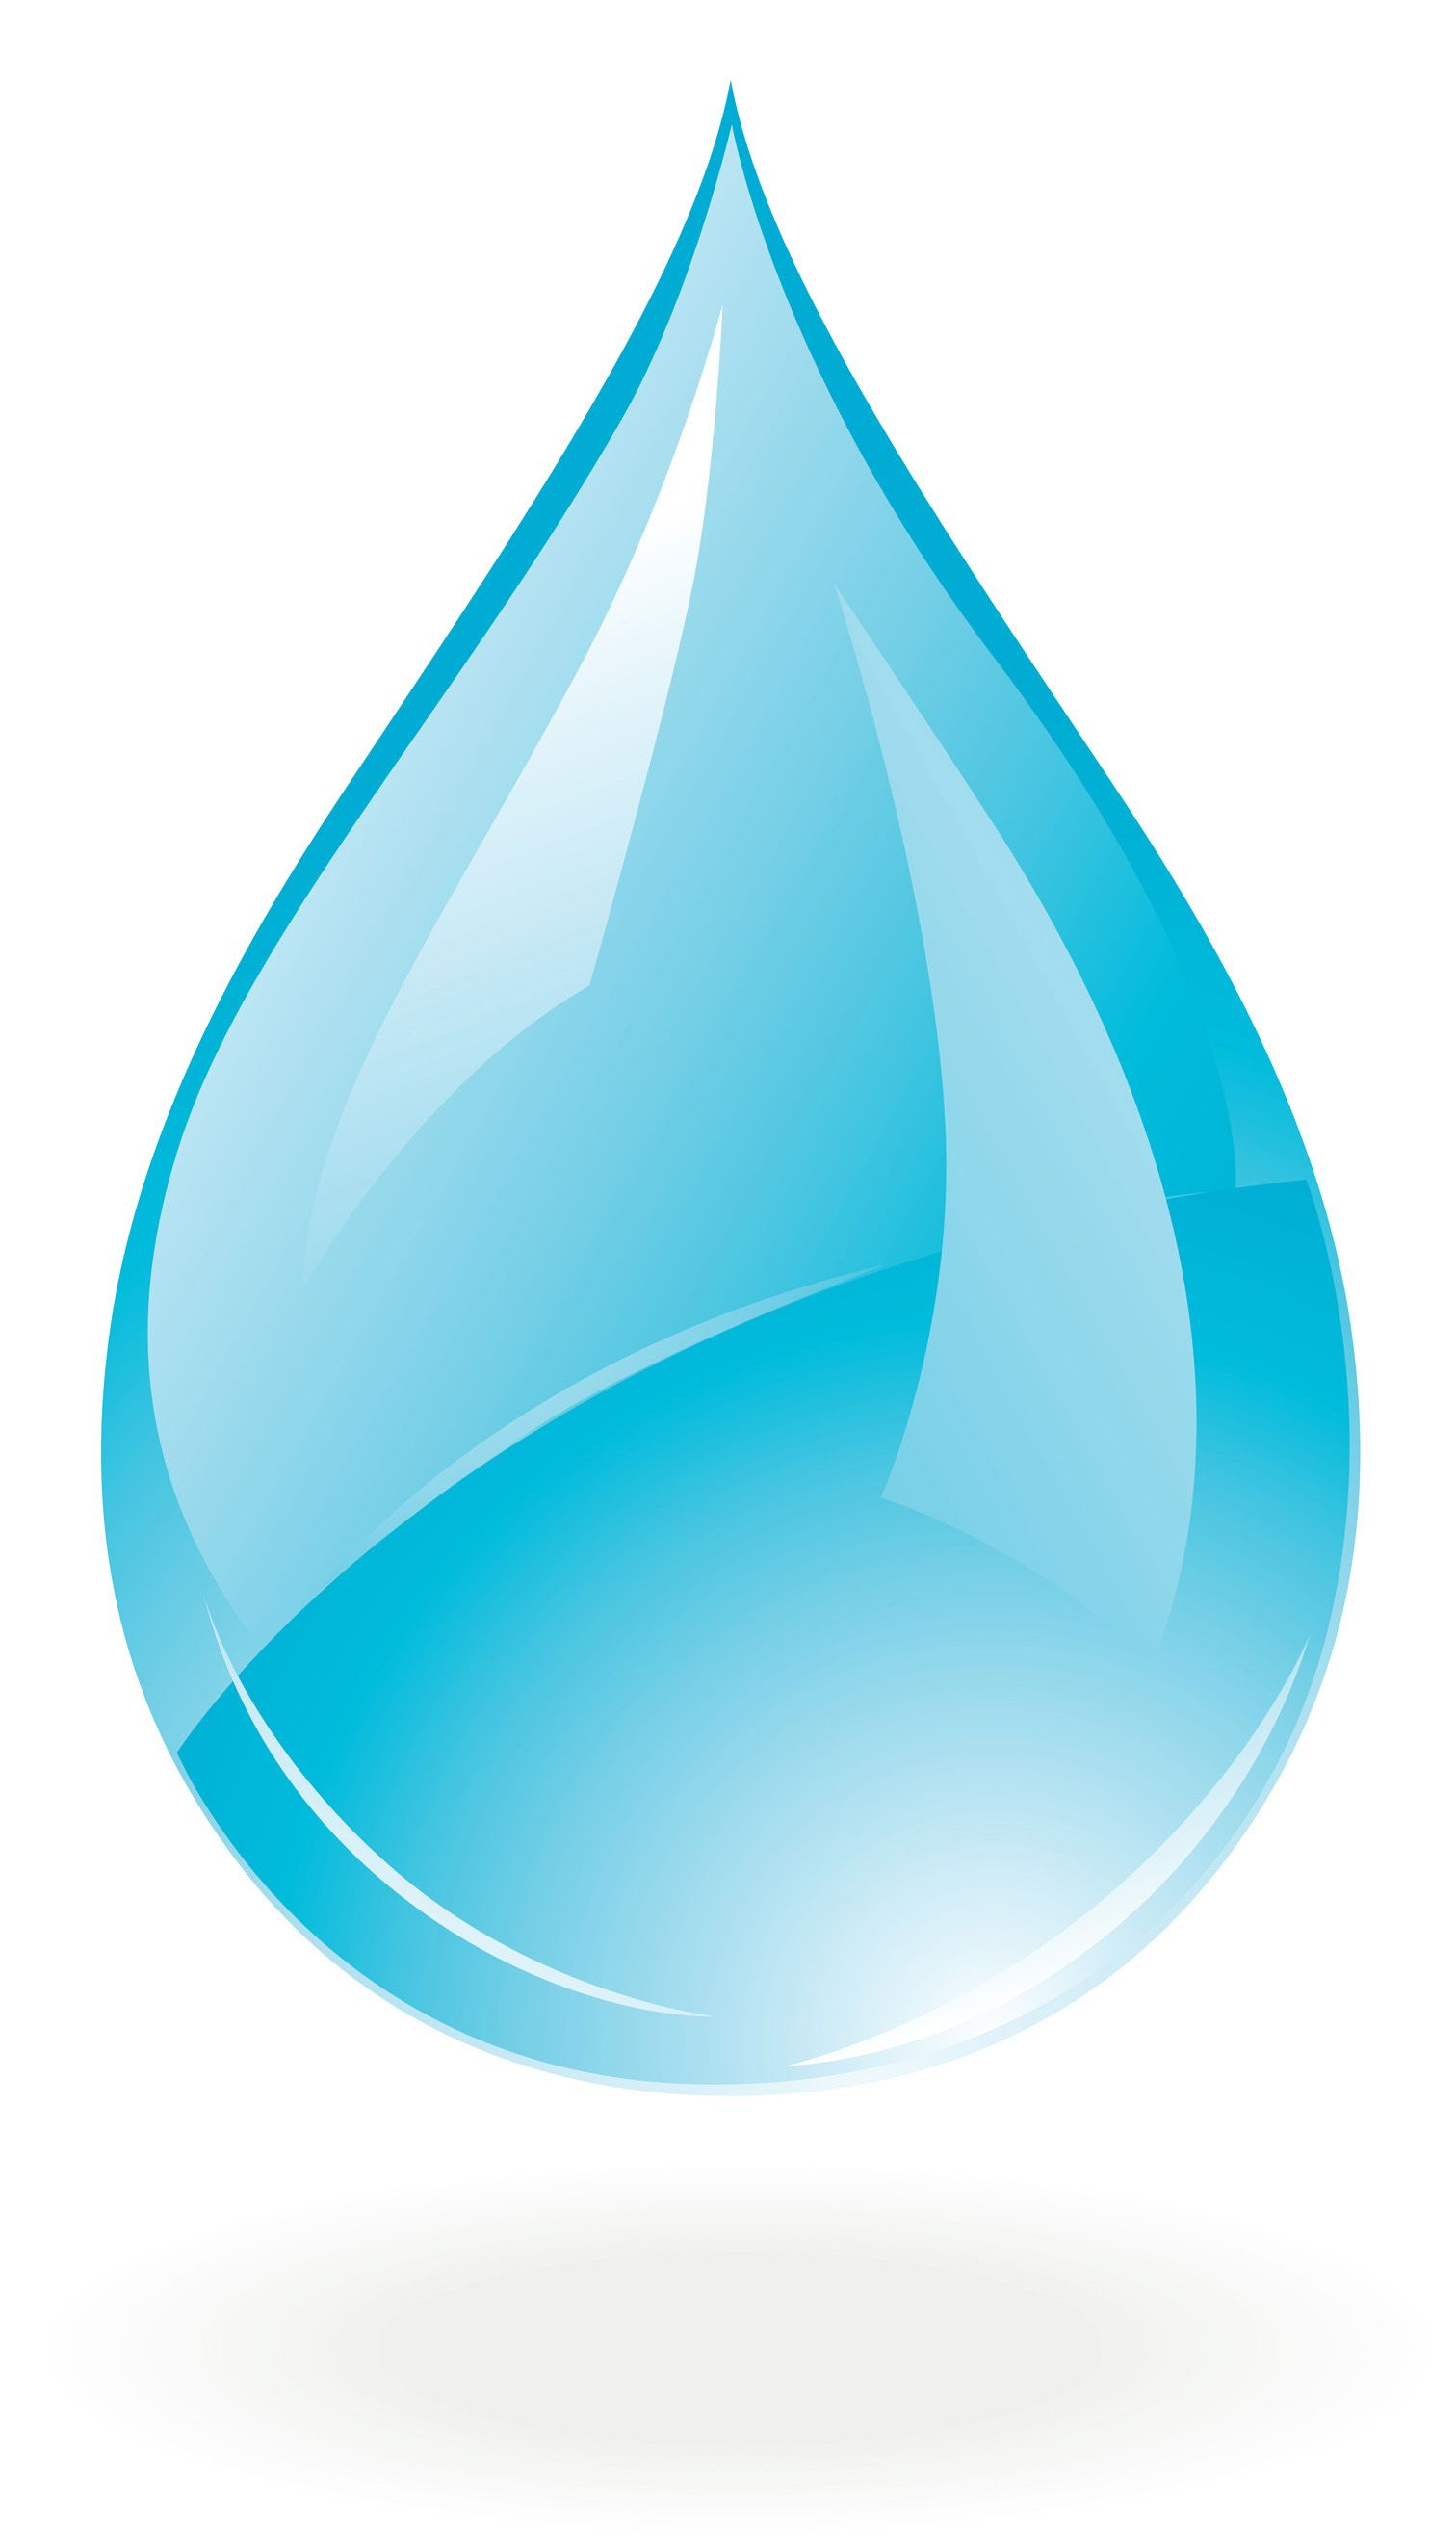 Water drps clipart clip art library Water Drop Psd Clipart | Planning makes me Happy | Clip art, Water ... clip art library